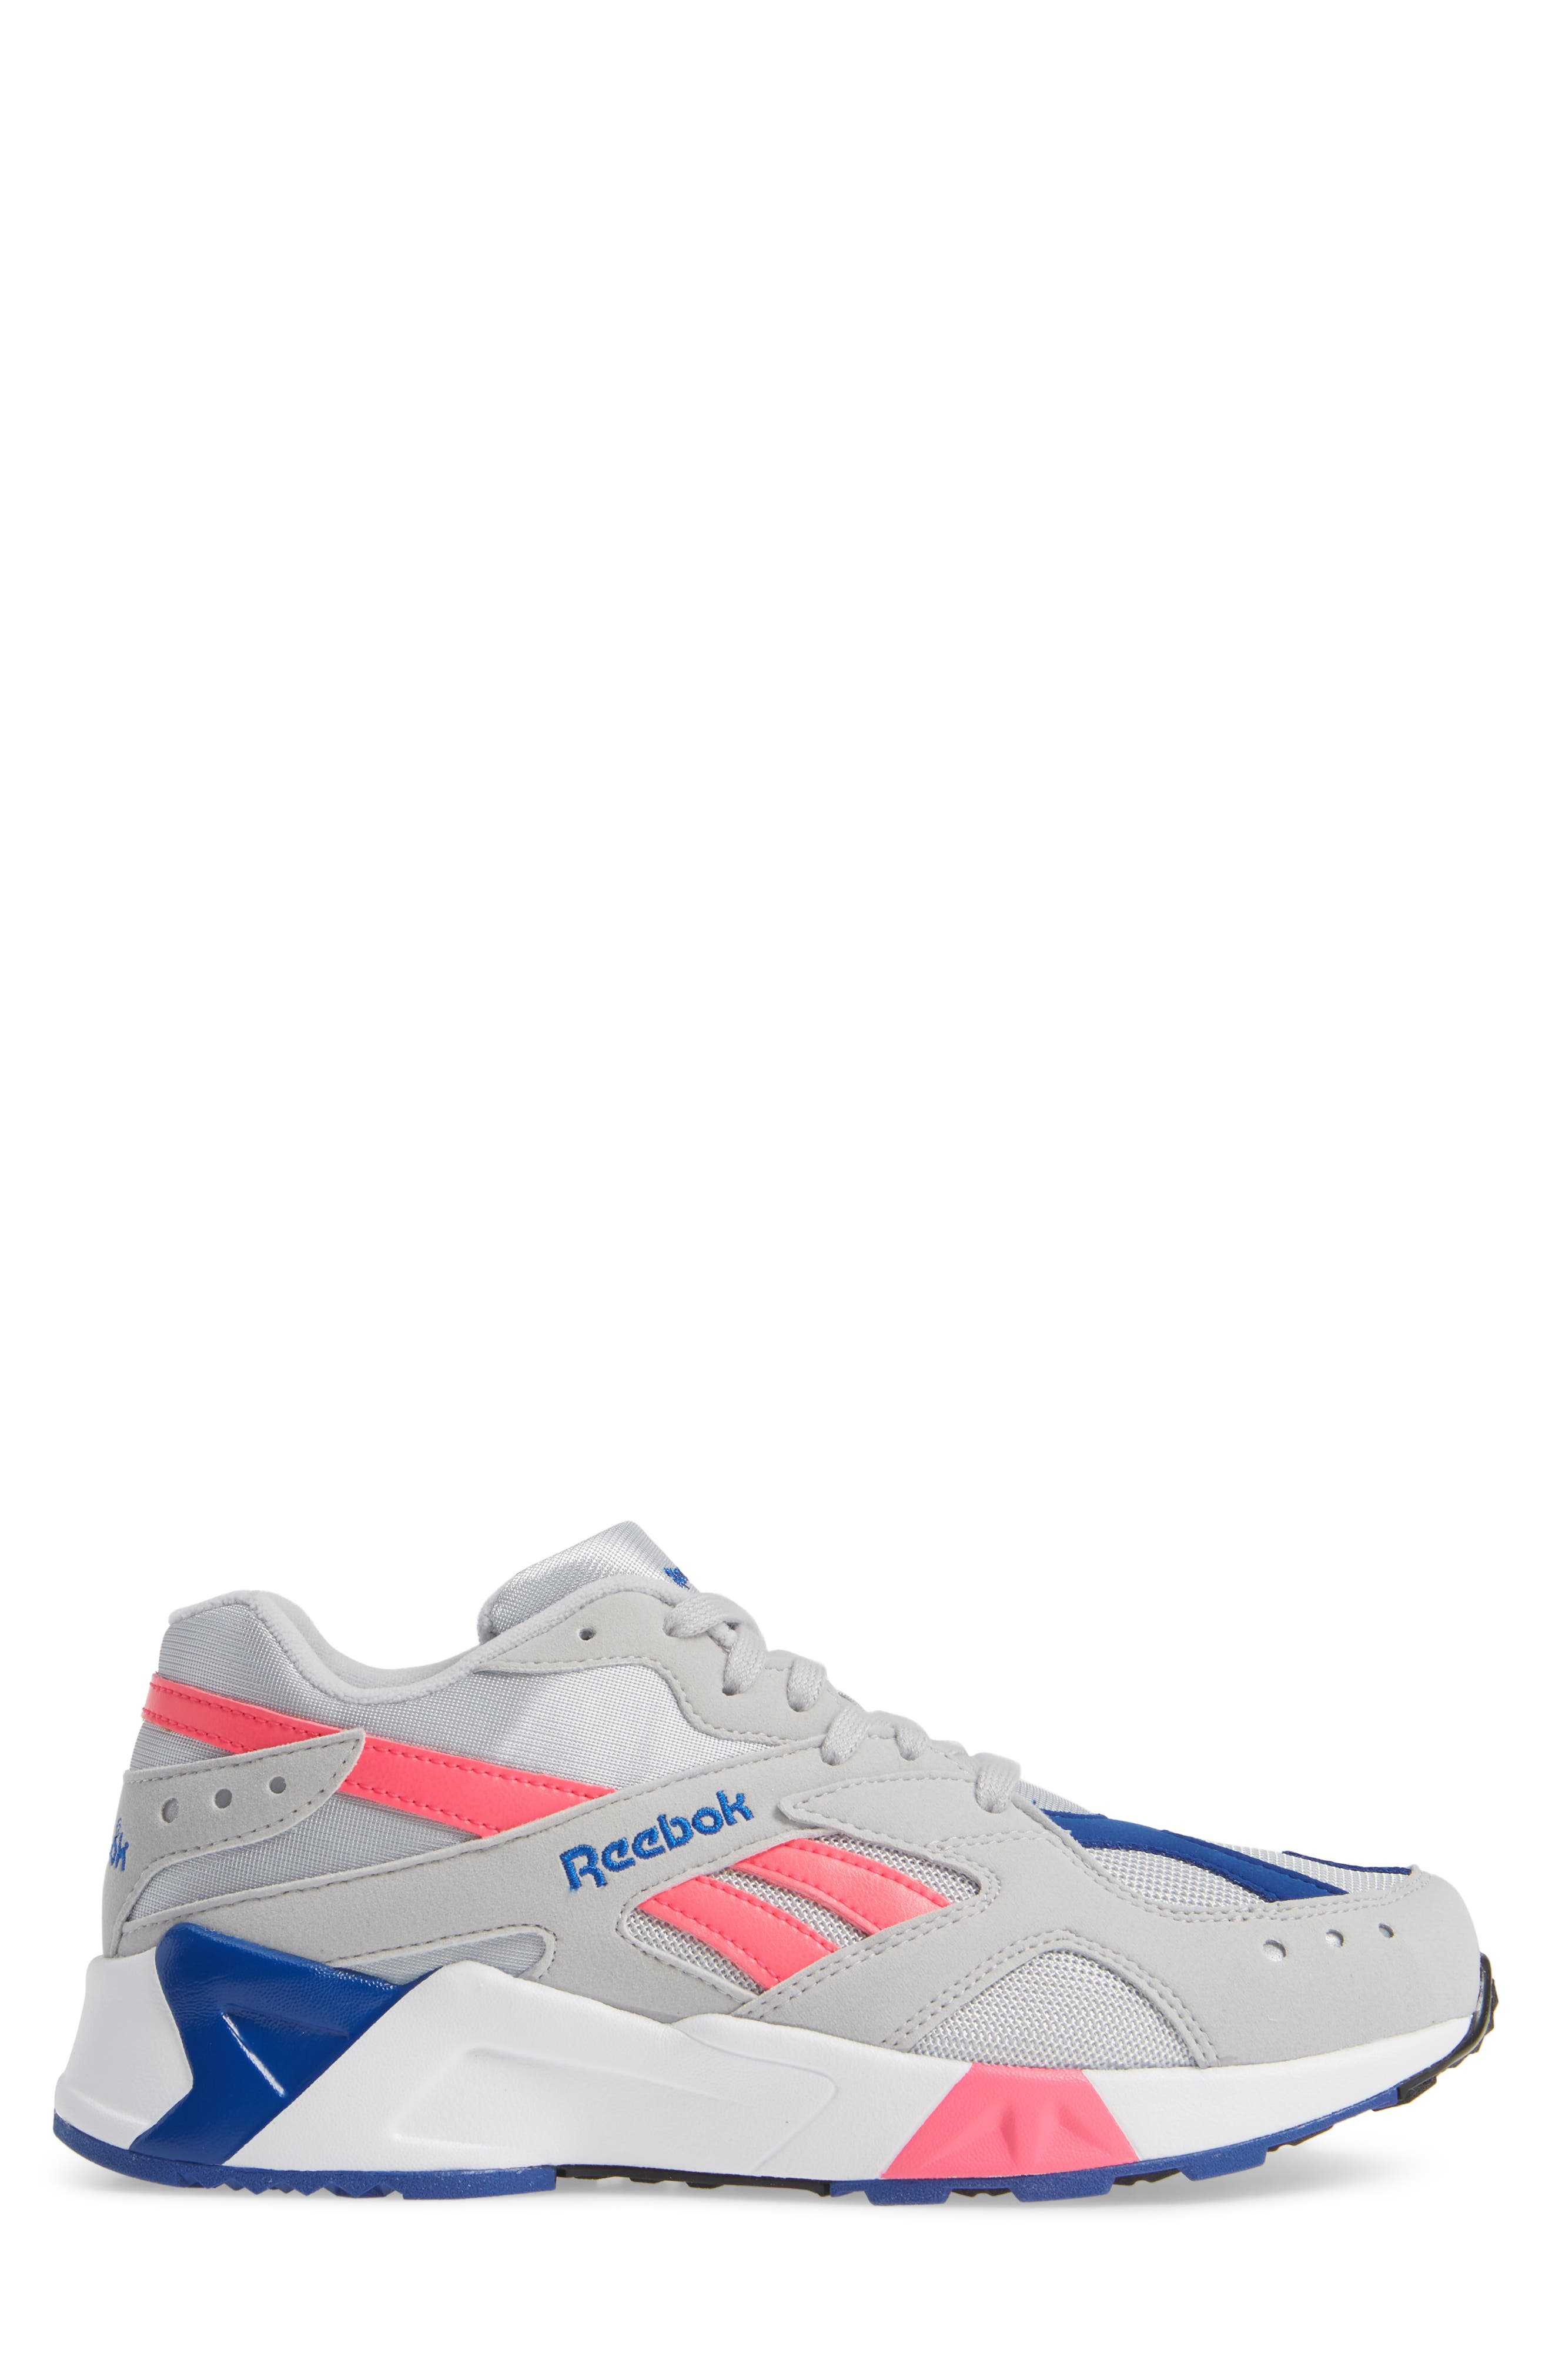 Aztrek Sneaker,                             Alternate thumbnail 3, color,                             GREY/ PINK/ COLLEGIATE ROYAL